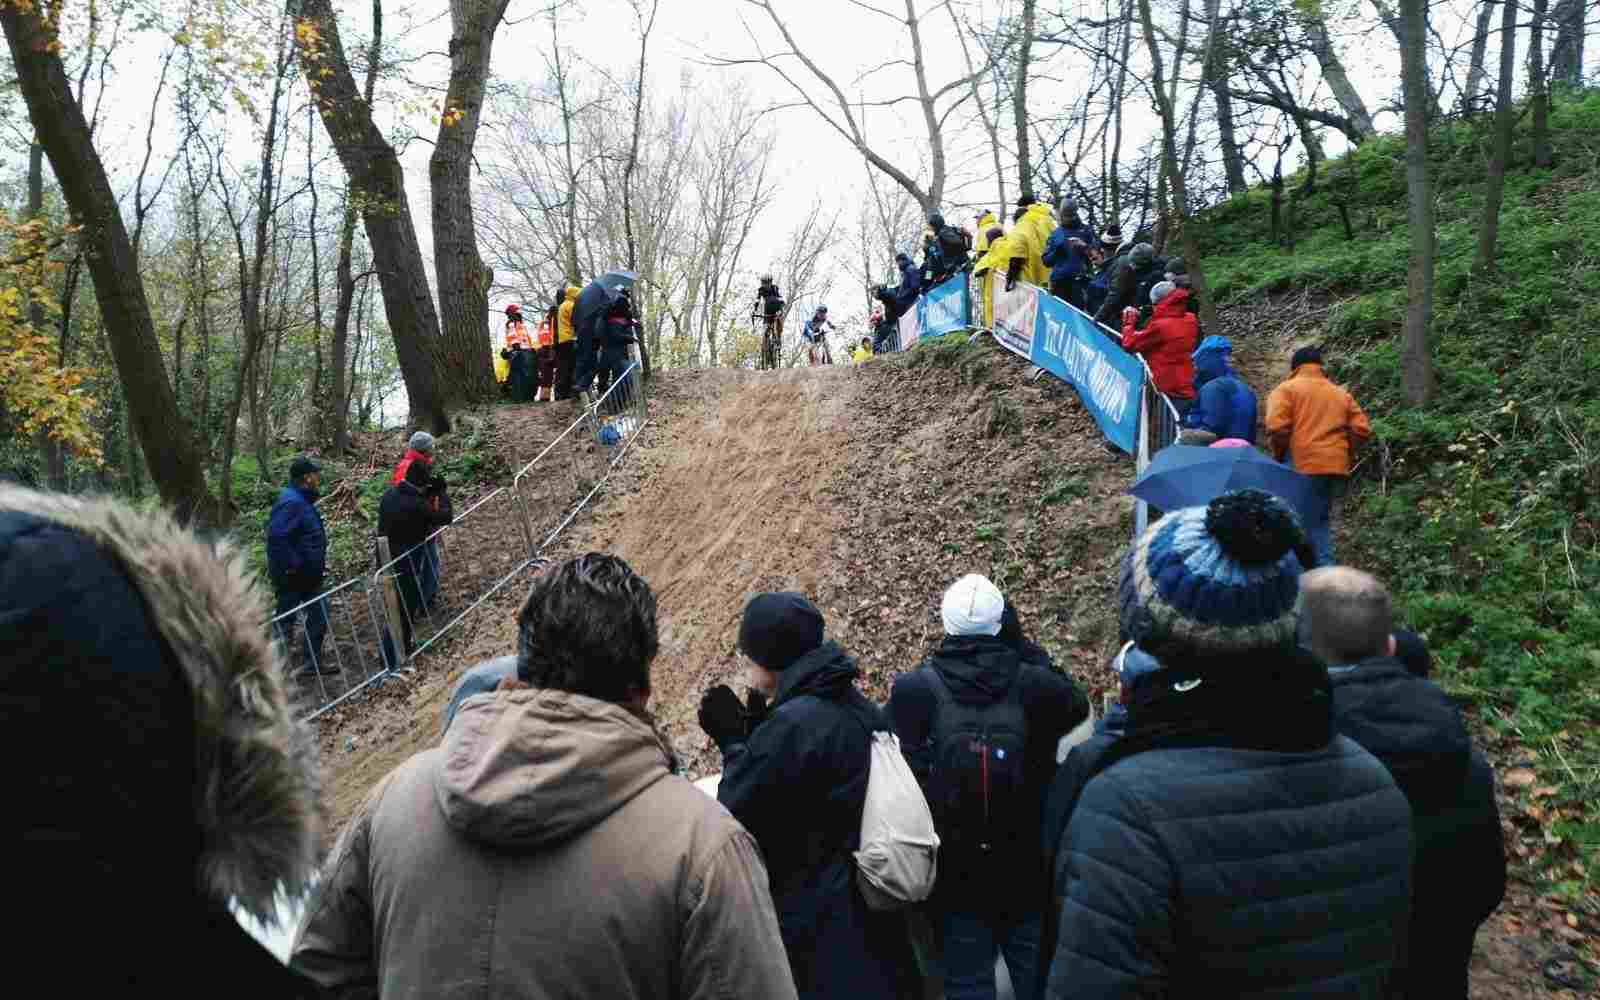 Cyclist in cyclocross race coming down hill